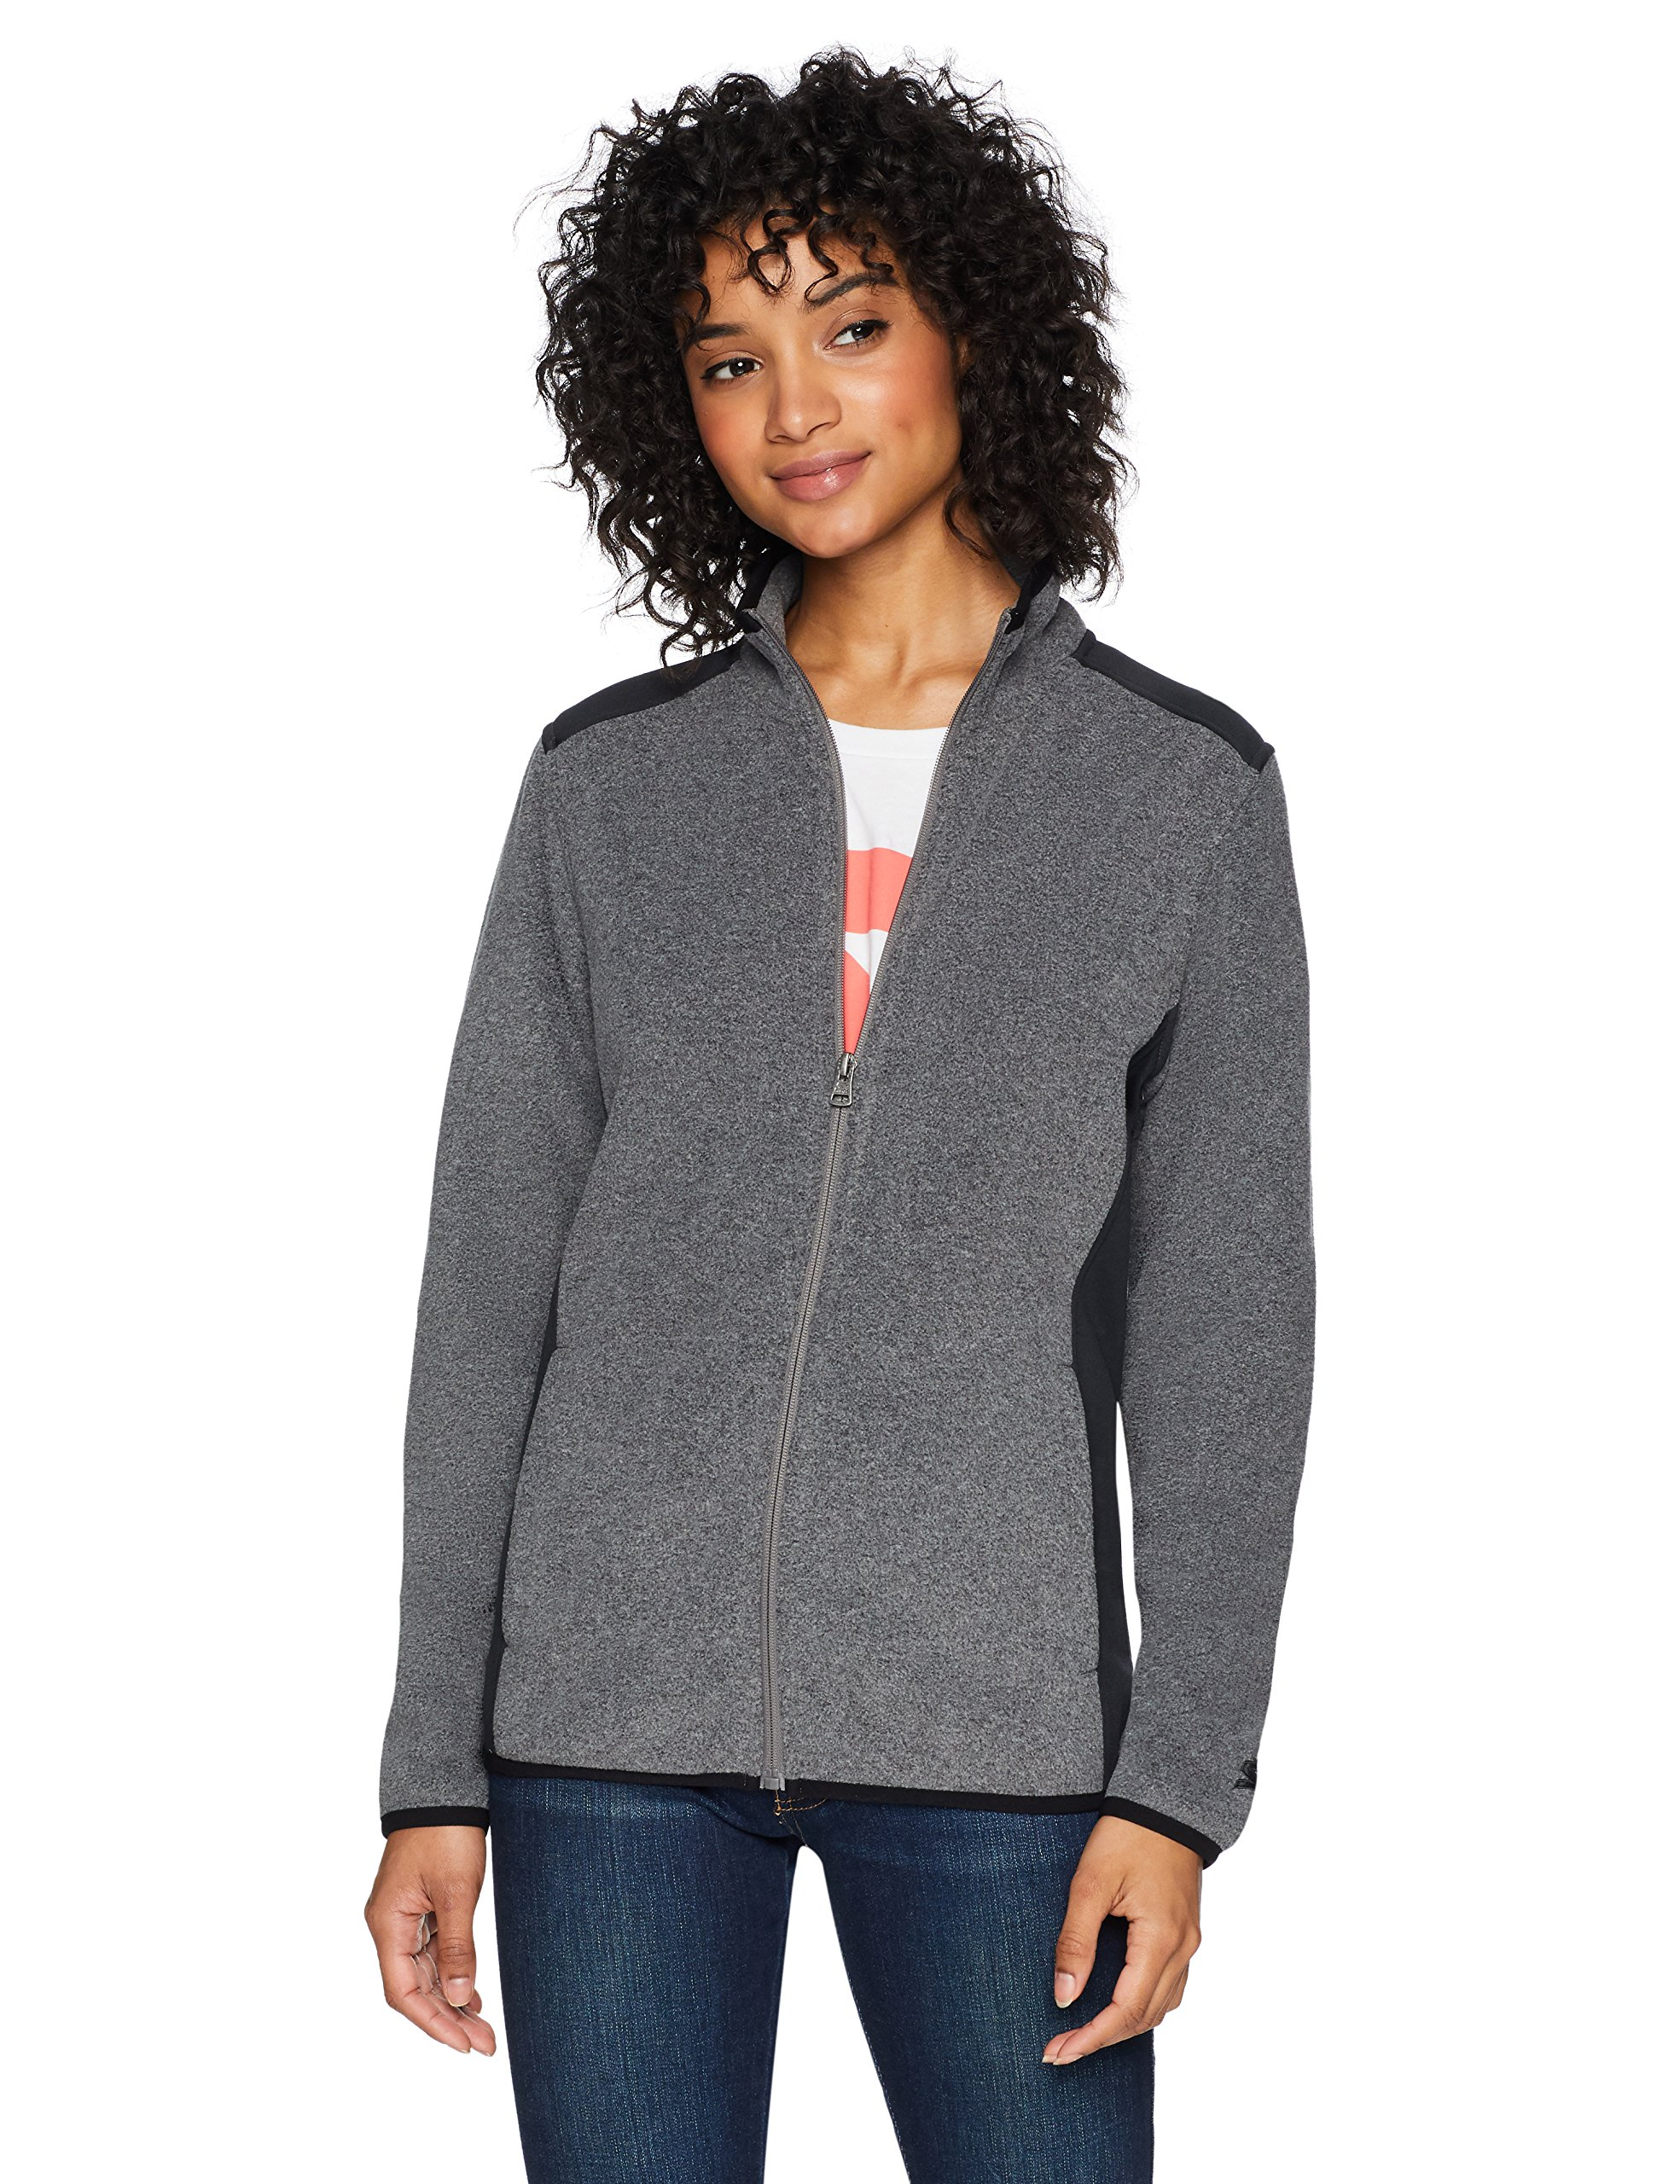 Starter Women's Polar Fleece Jacket, Amazon Exclusive